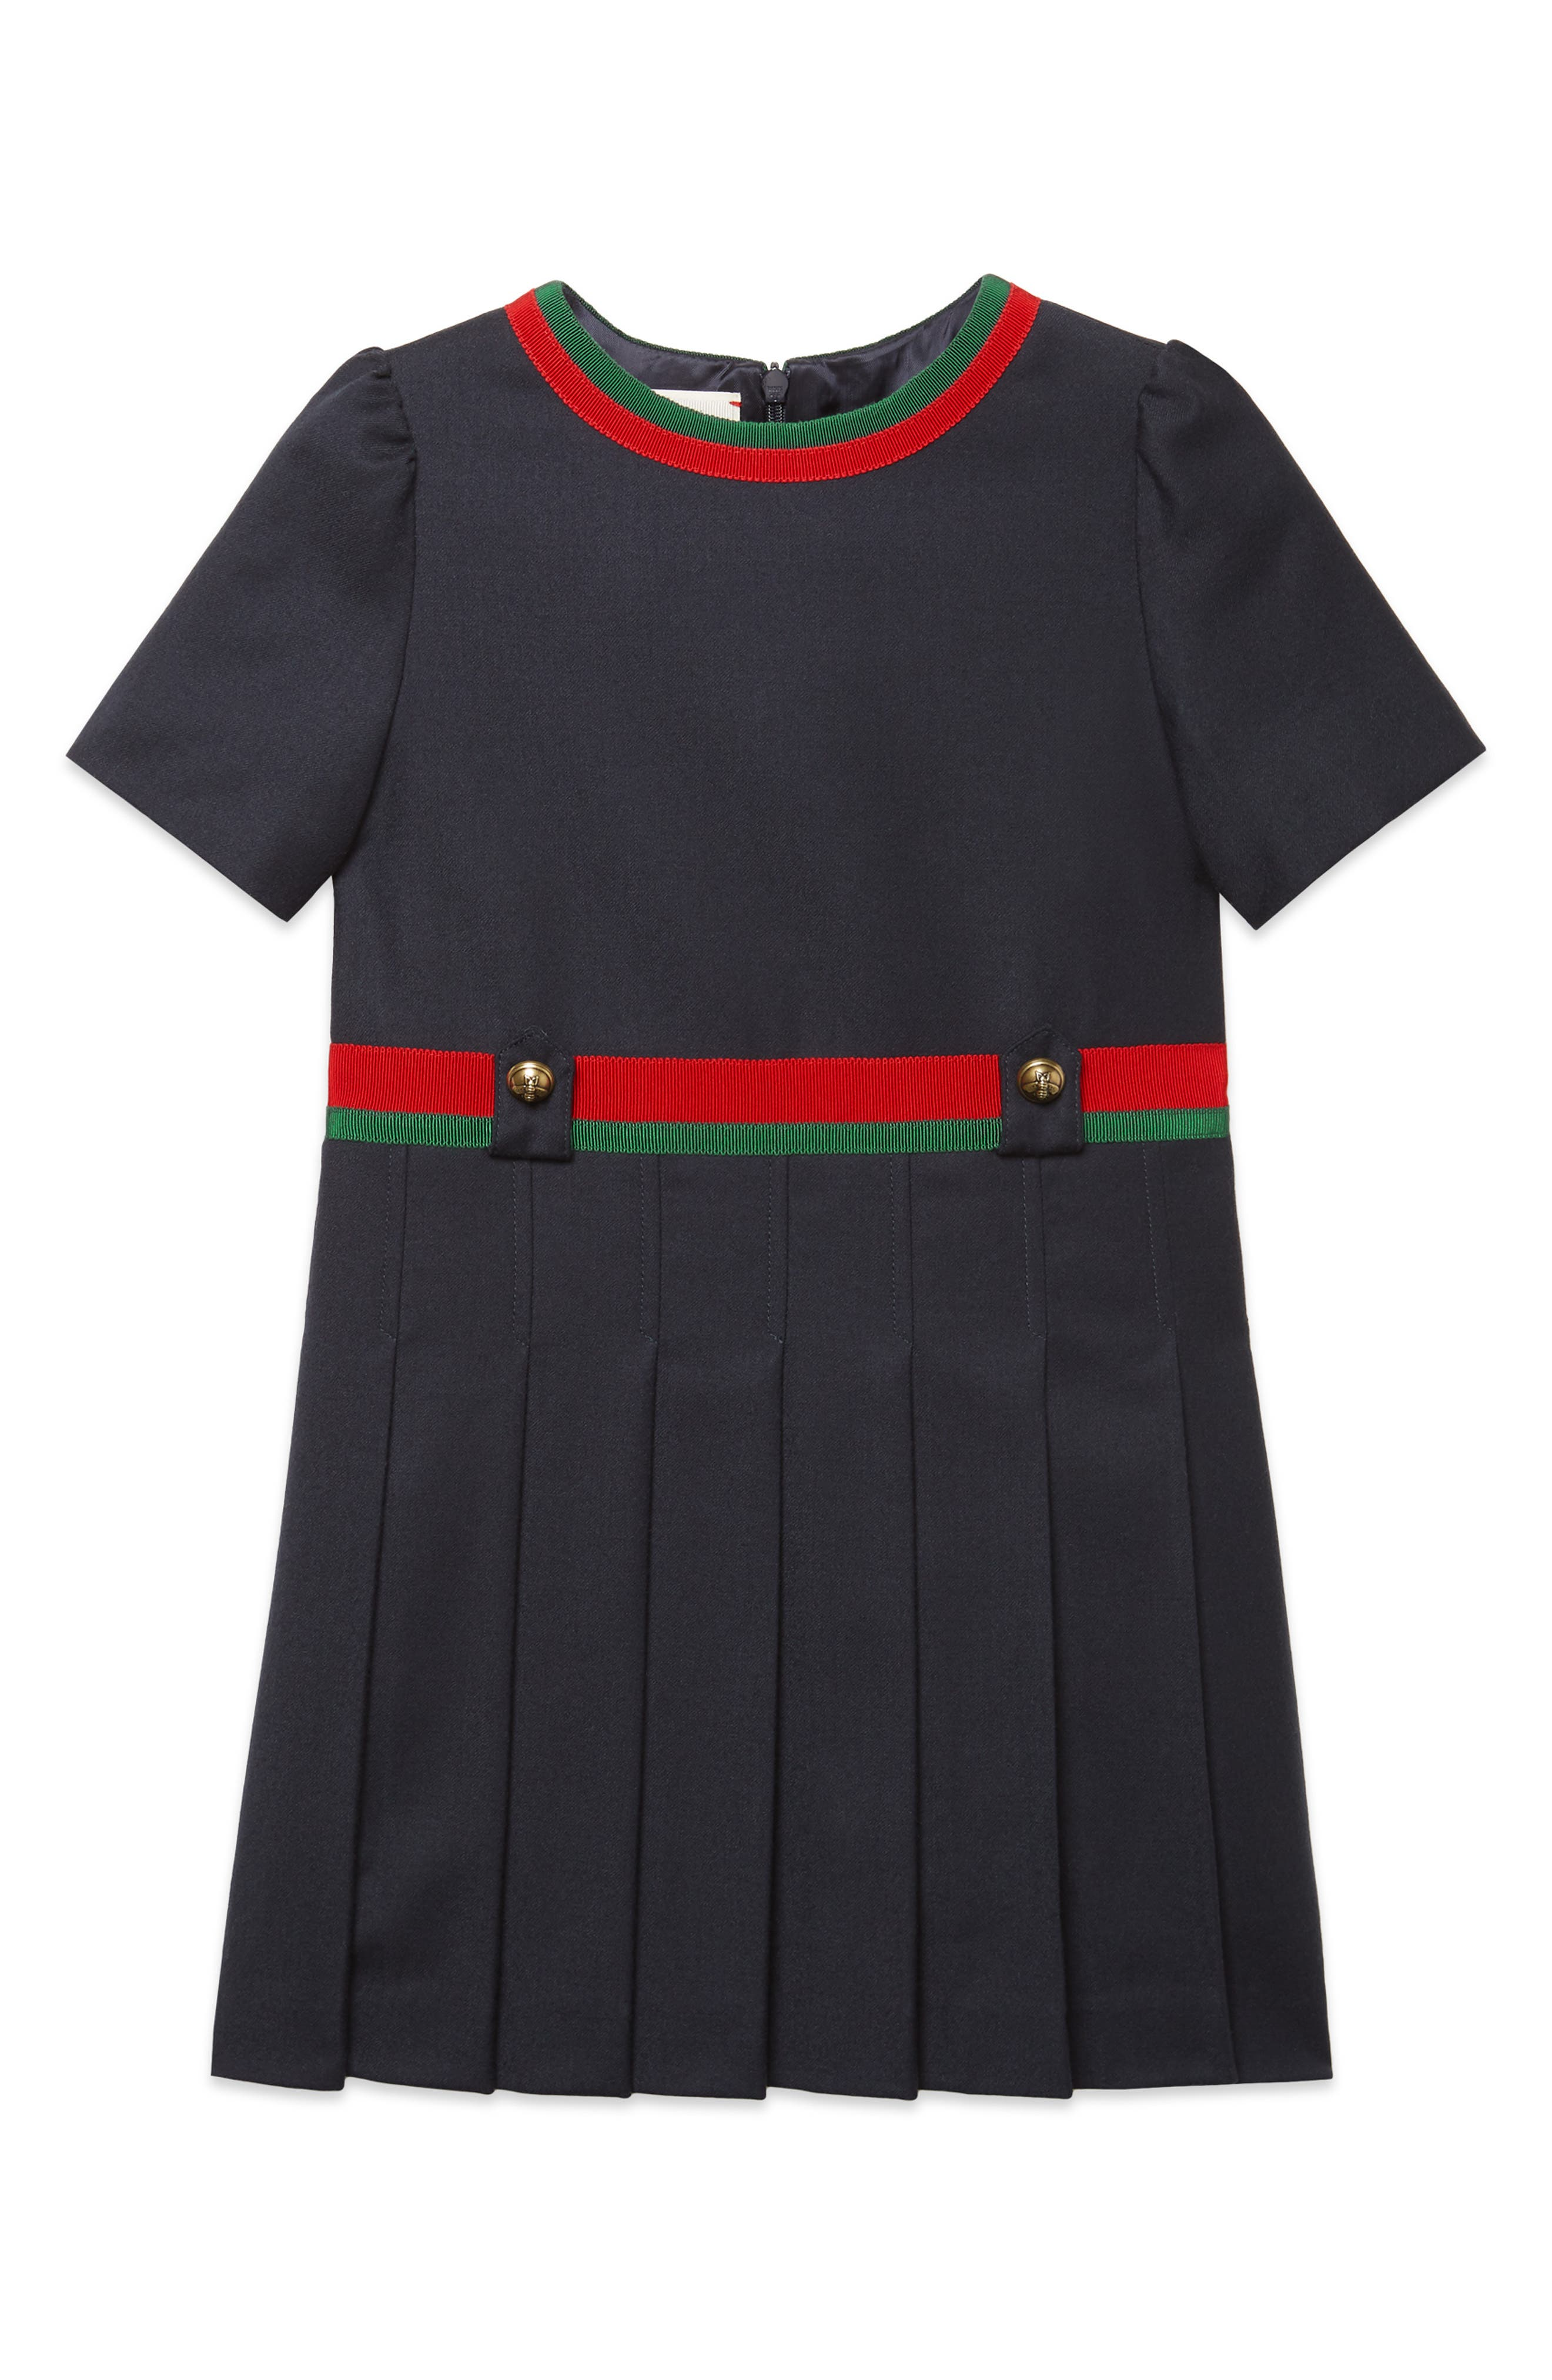 60s 70s Kids Costumes & Clothing Girls & Boys Girls Gucci Pleated Wool Dress Size 4Y - Blue $720.00 AT vintagedancer.com